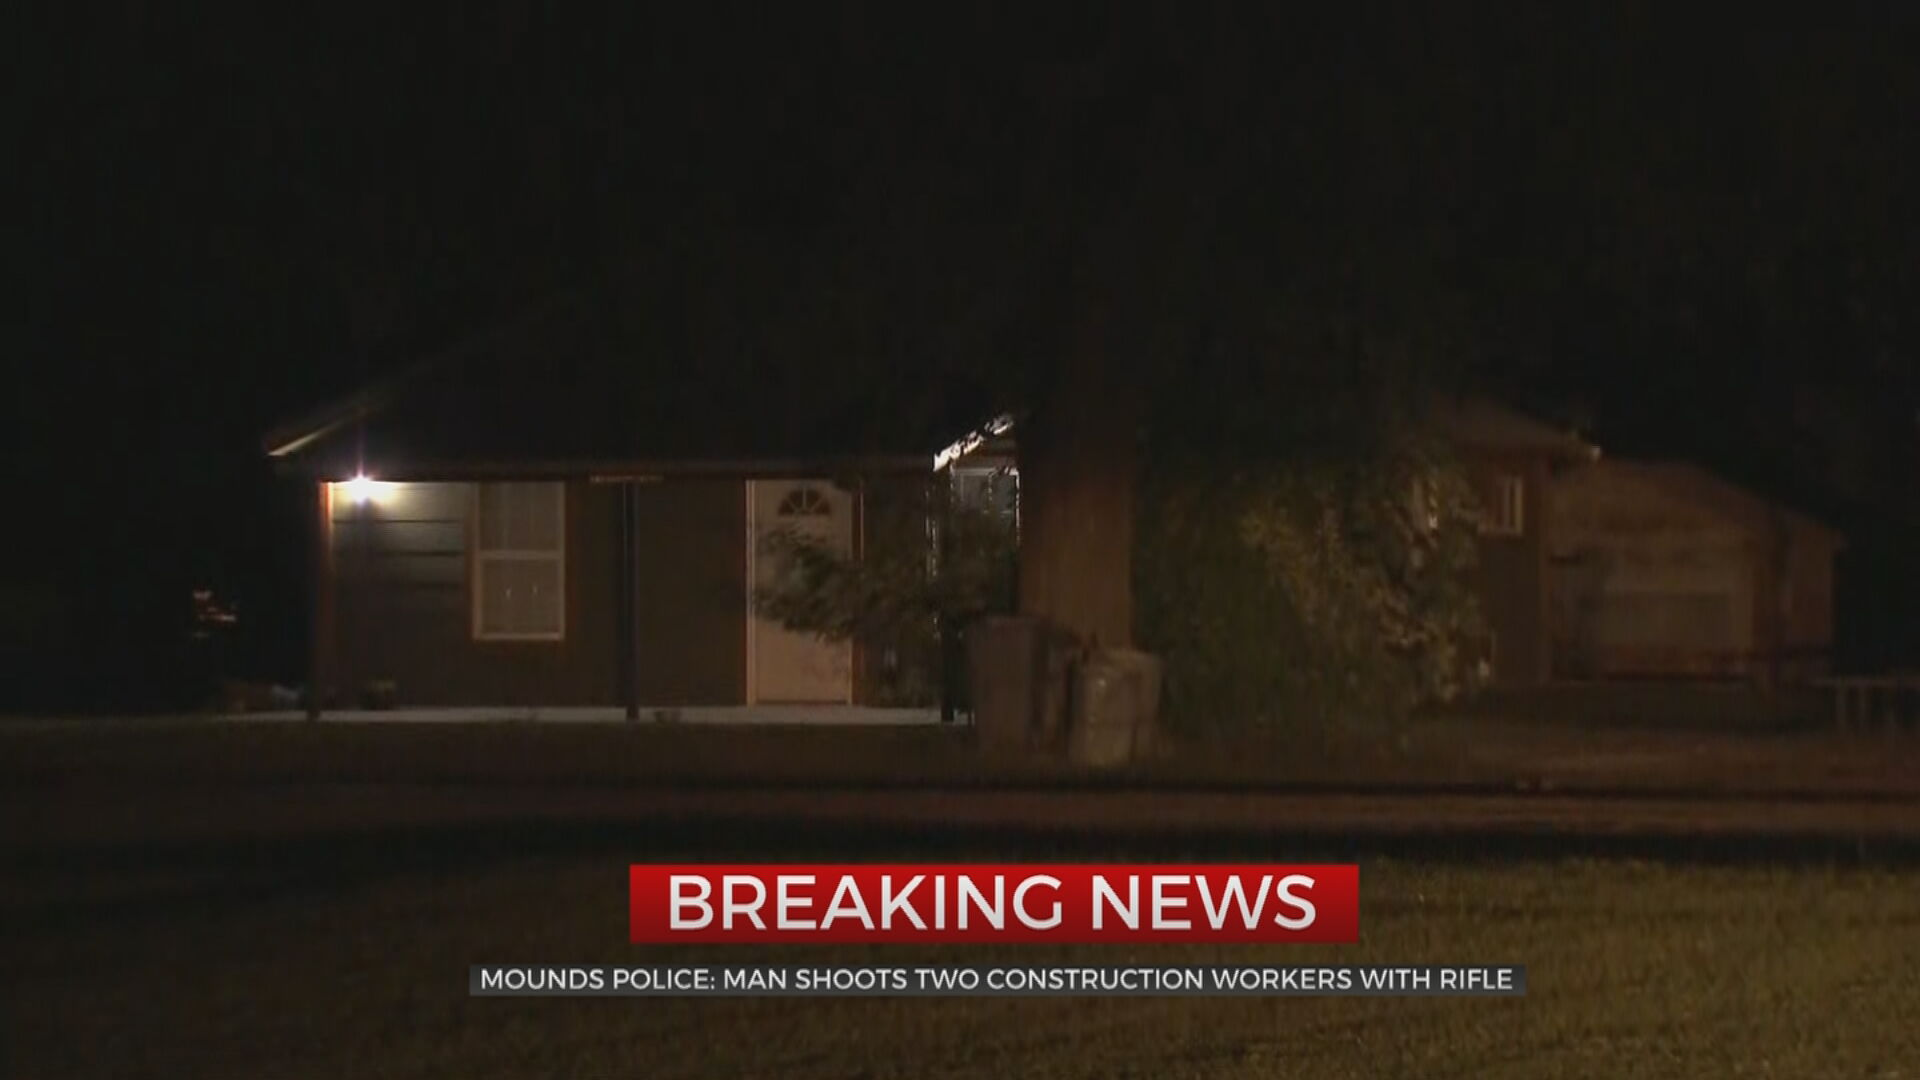 Man Arrested After Mounds Police Say He Shot Construction Crew With Rifle